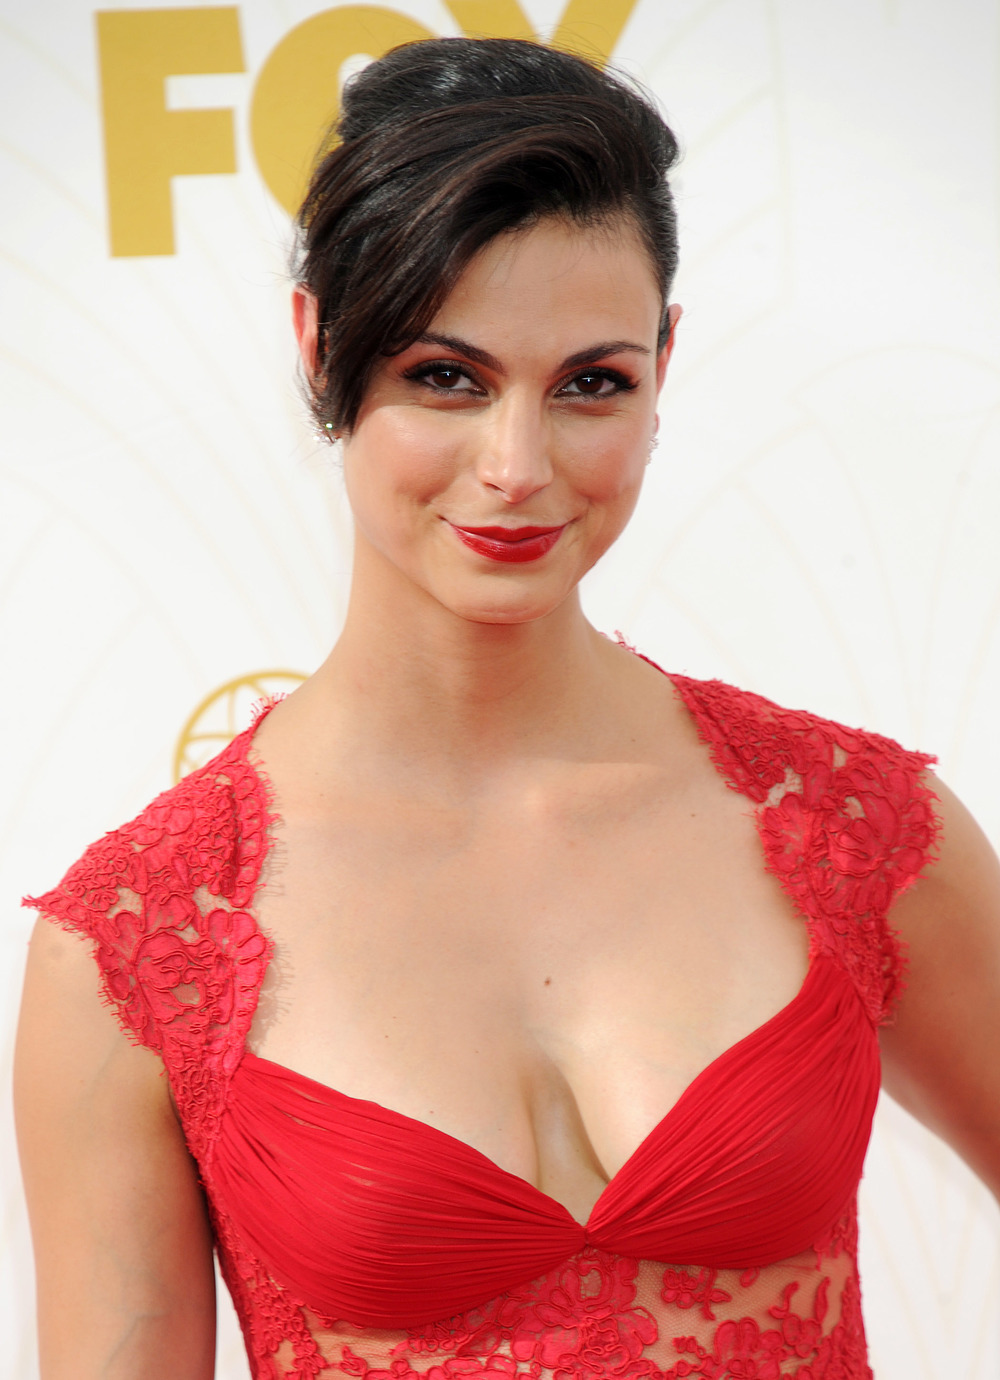 Morena Baccarin At The 2015 Emmy Awards Sascha Breuer